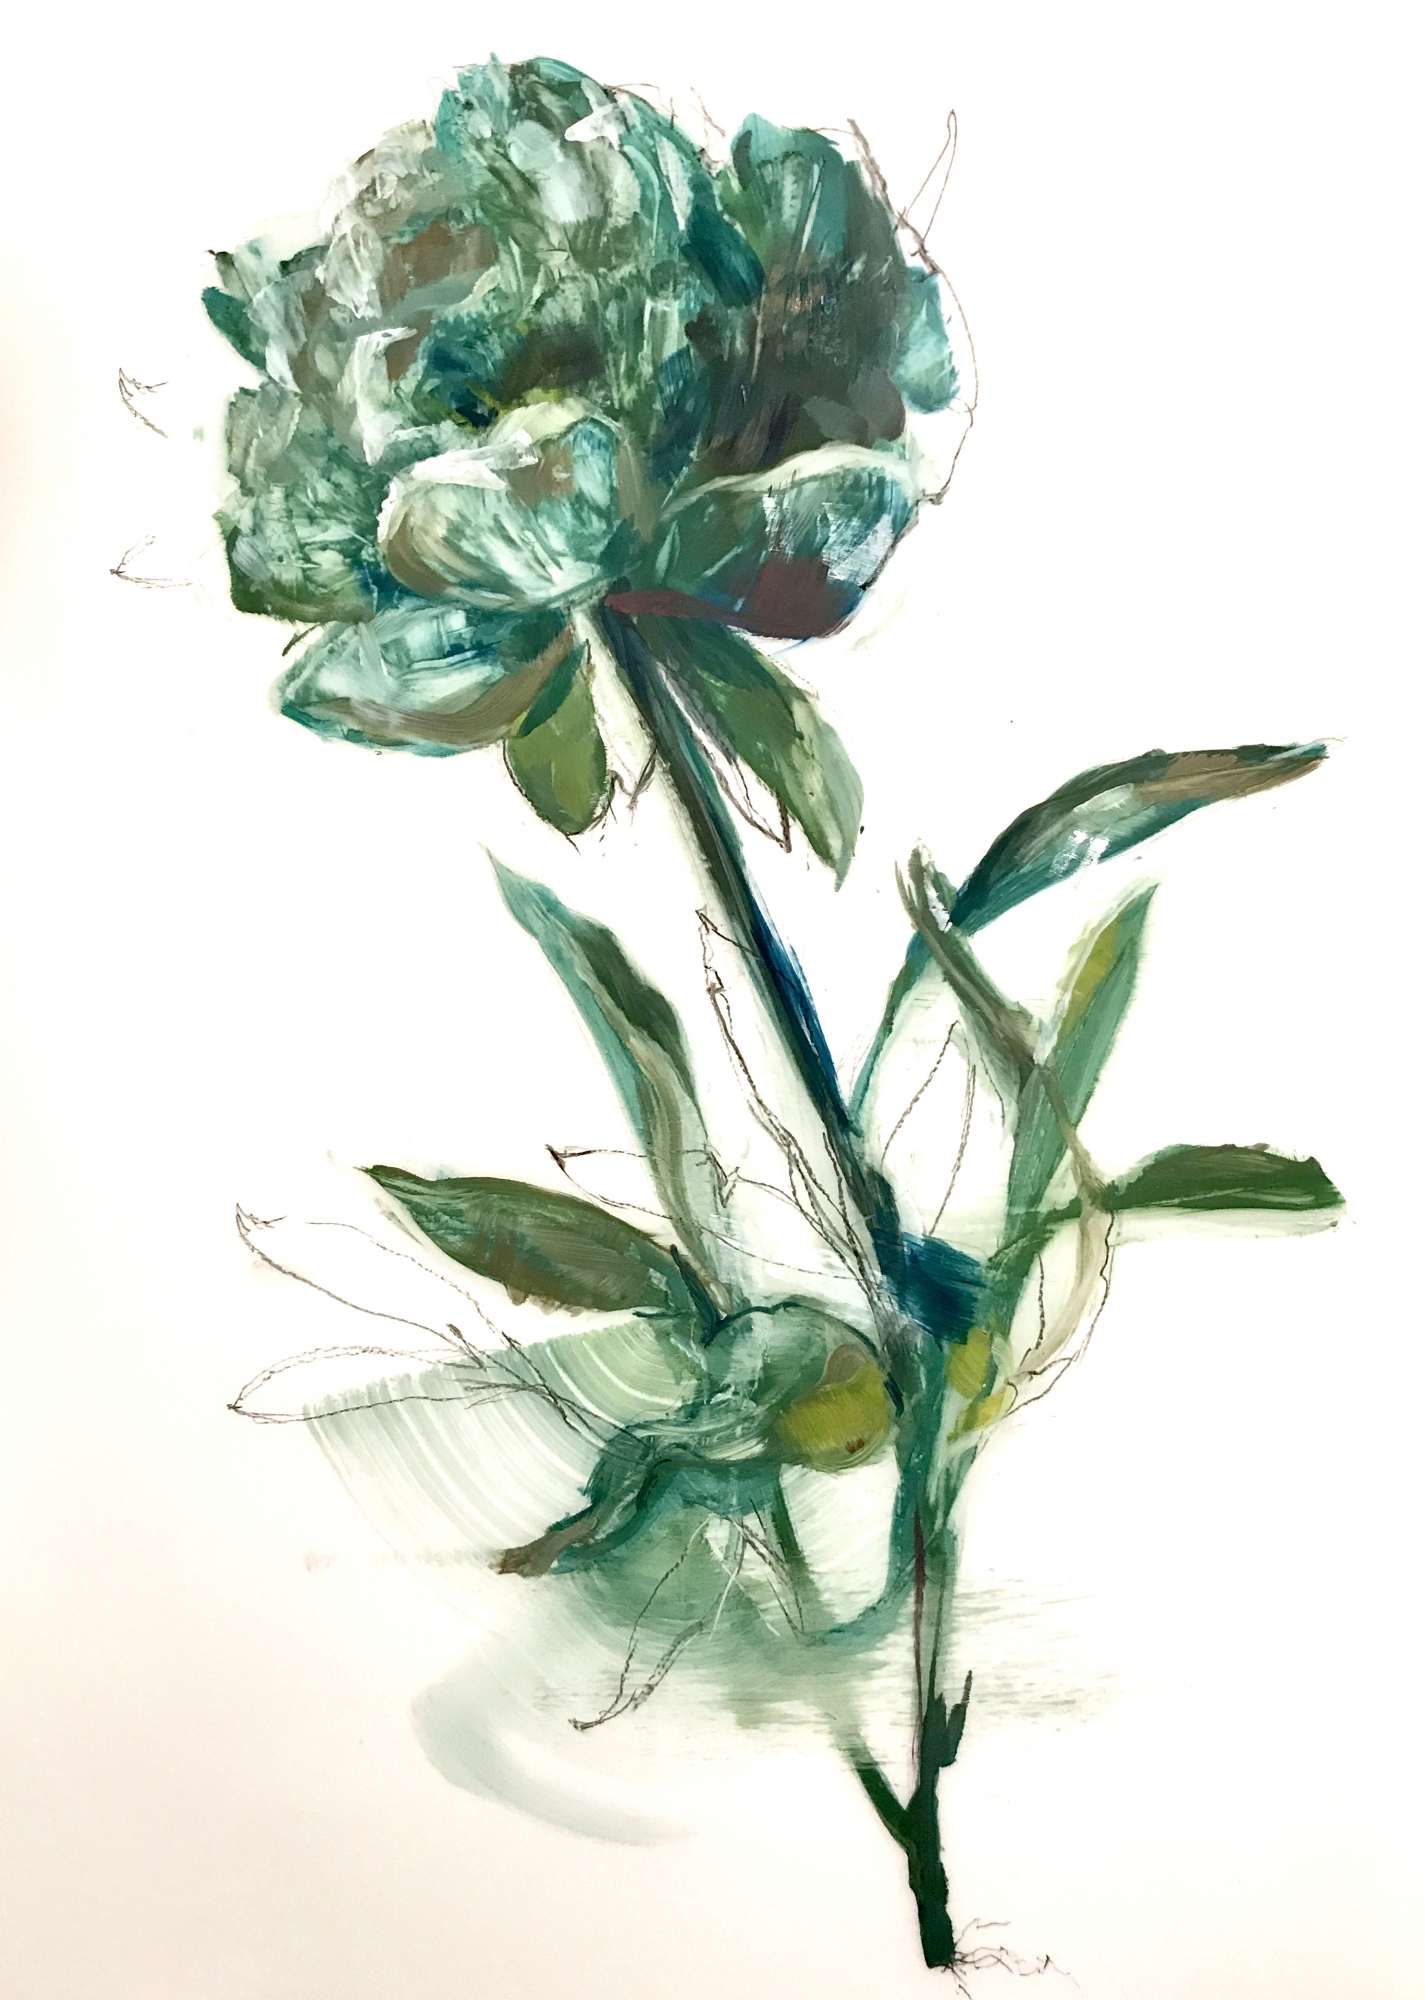 Teal Peony 2018- 2 by Madeleine Lamont